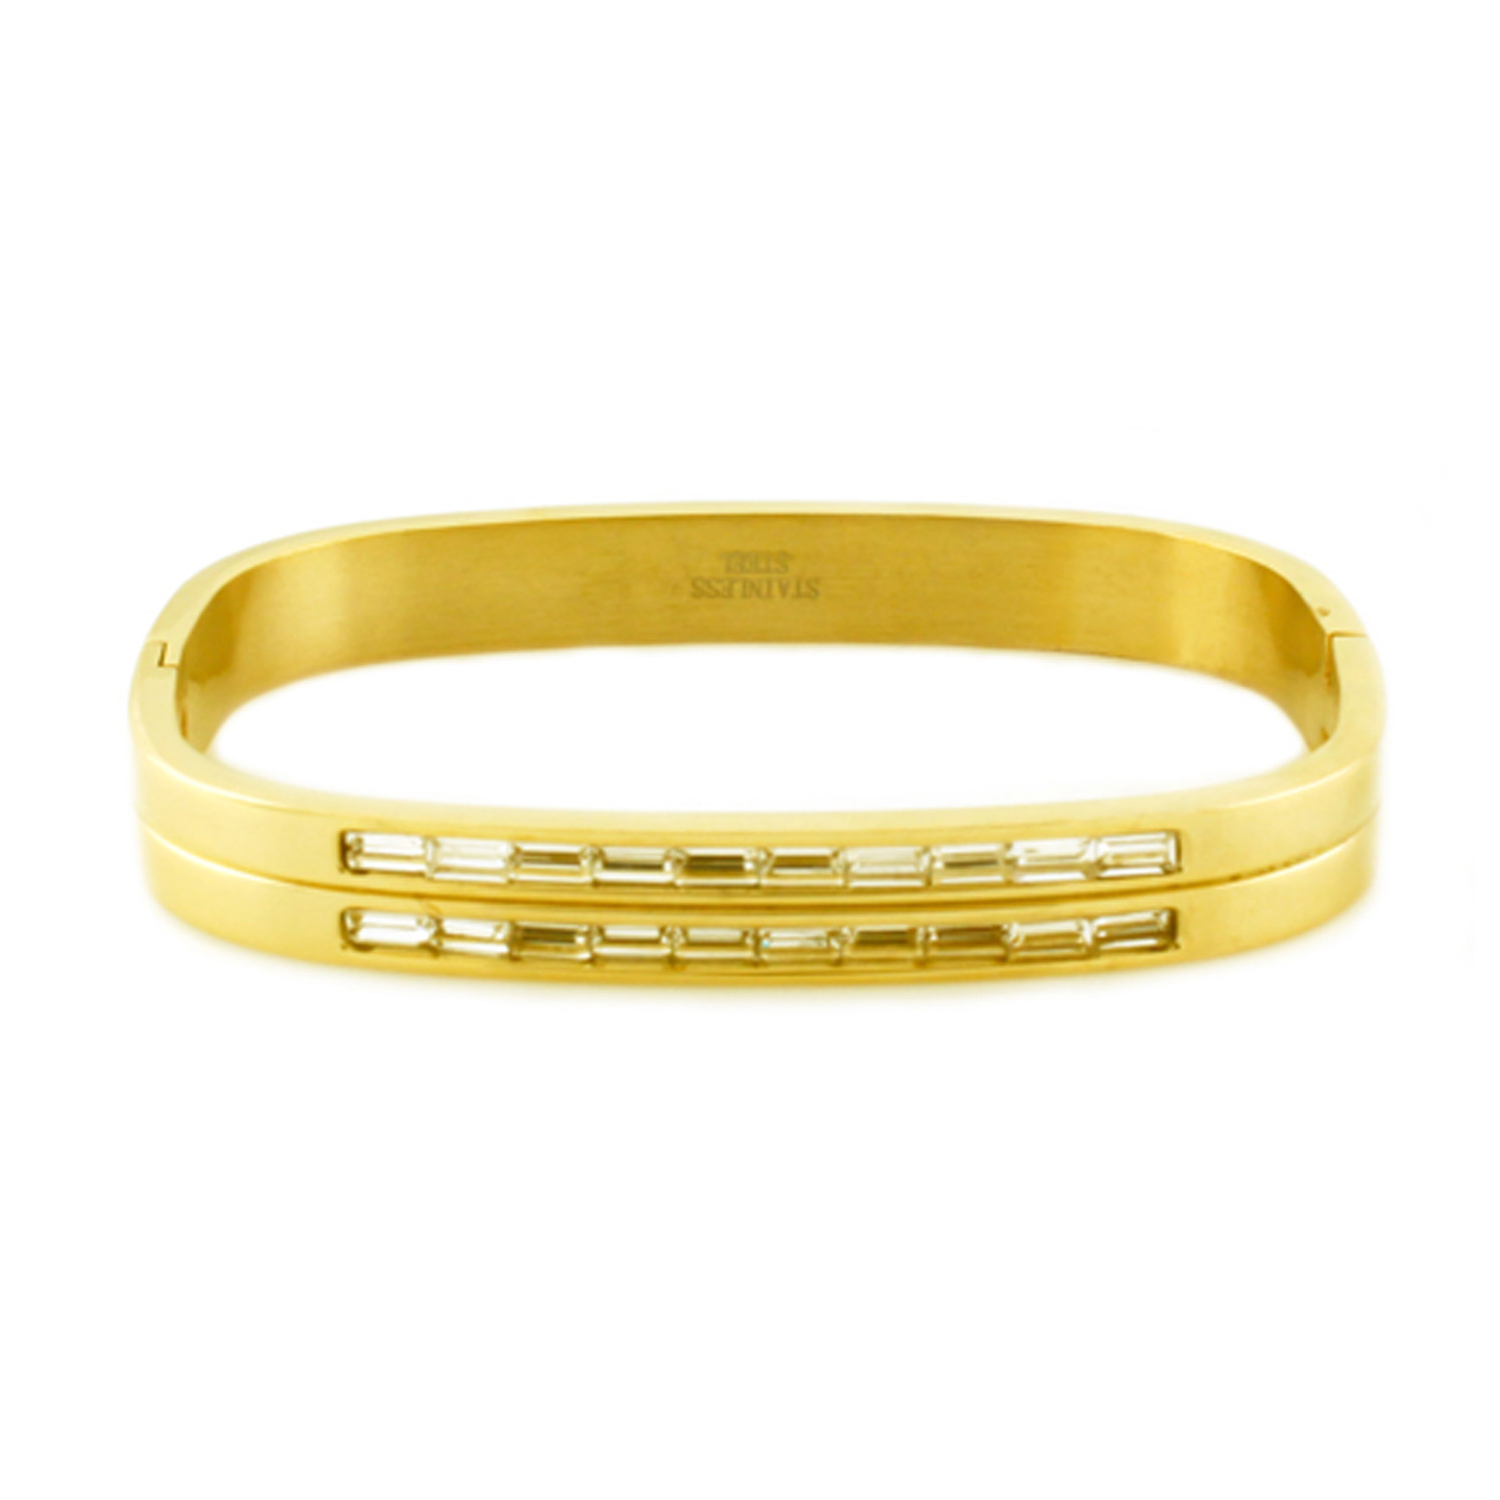 ''Gold Plated Stainless Steel Baguette CZ Channel Rectangular BANGLE,''